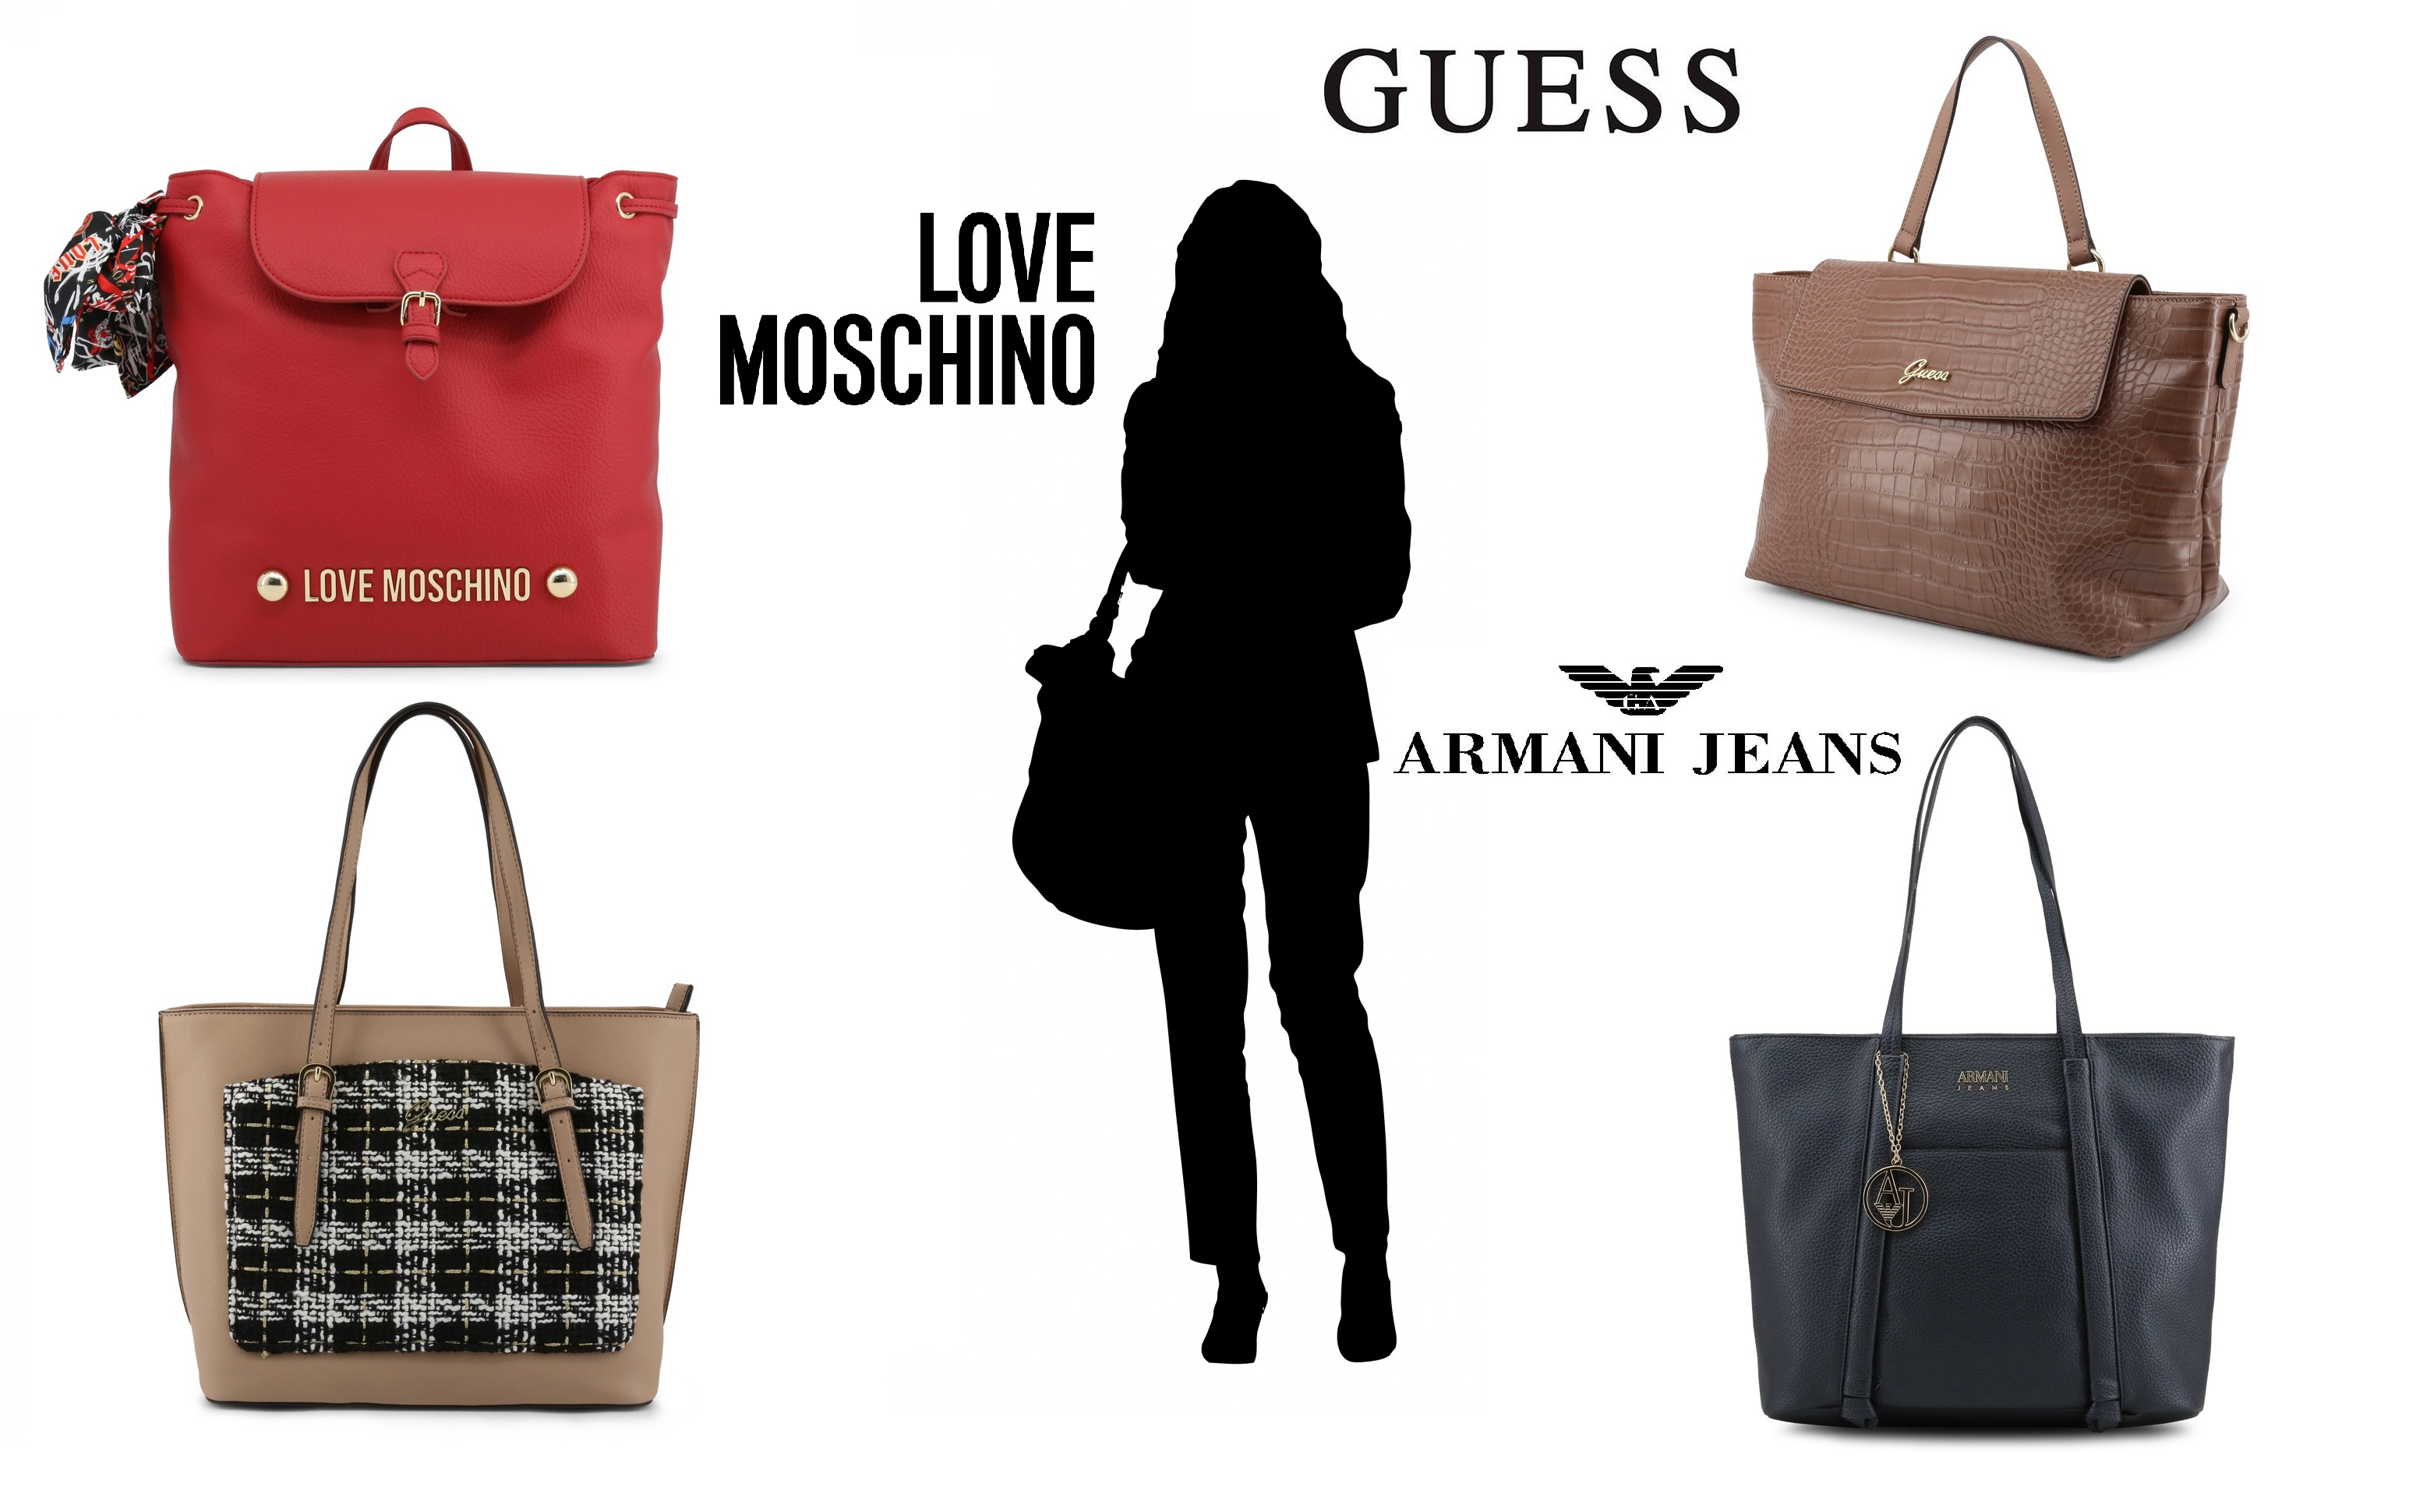 Kabelky Guess, Love Moschino, Armani Jeans